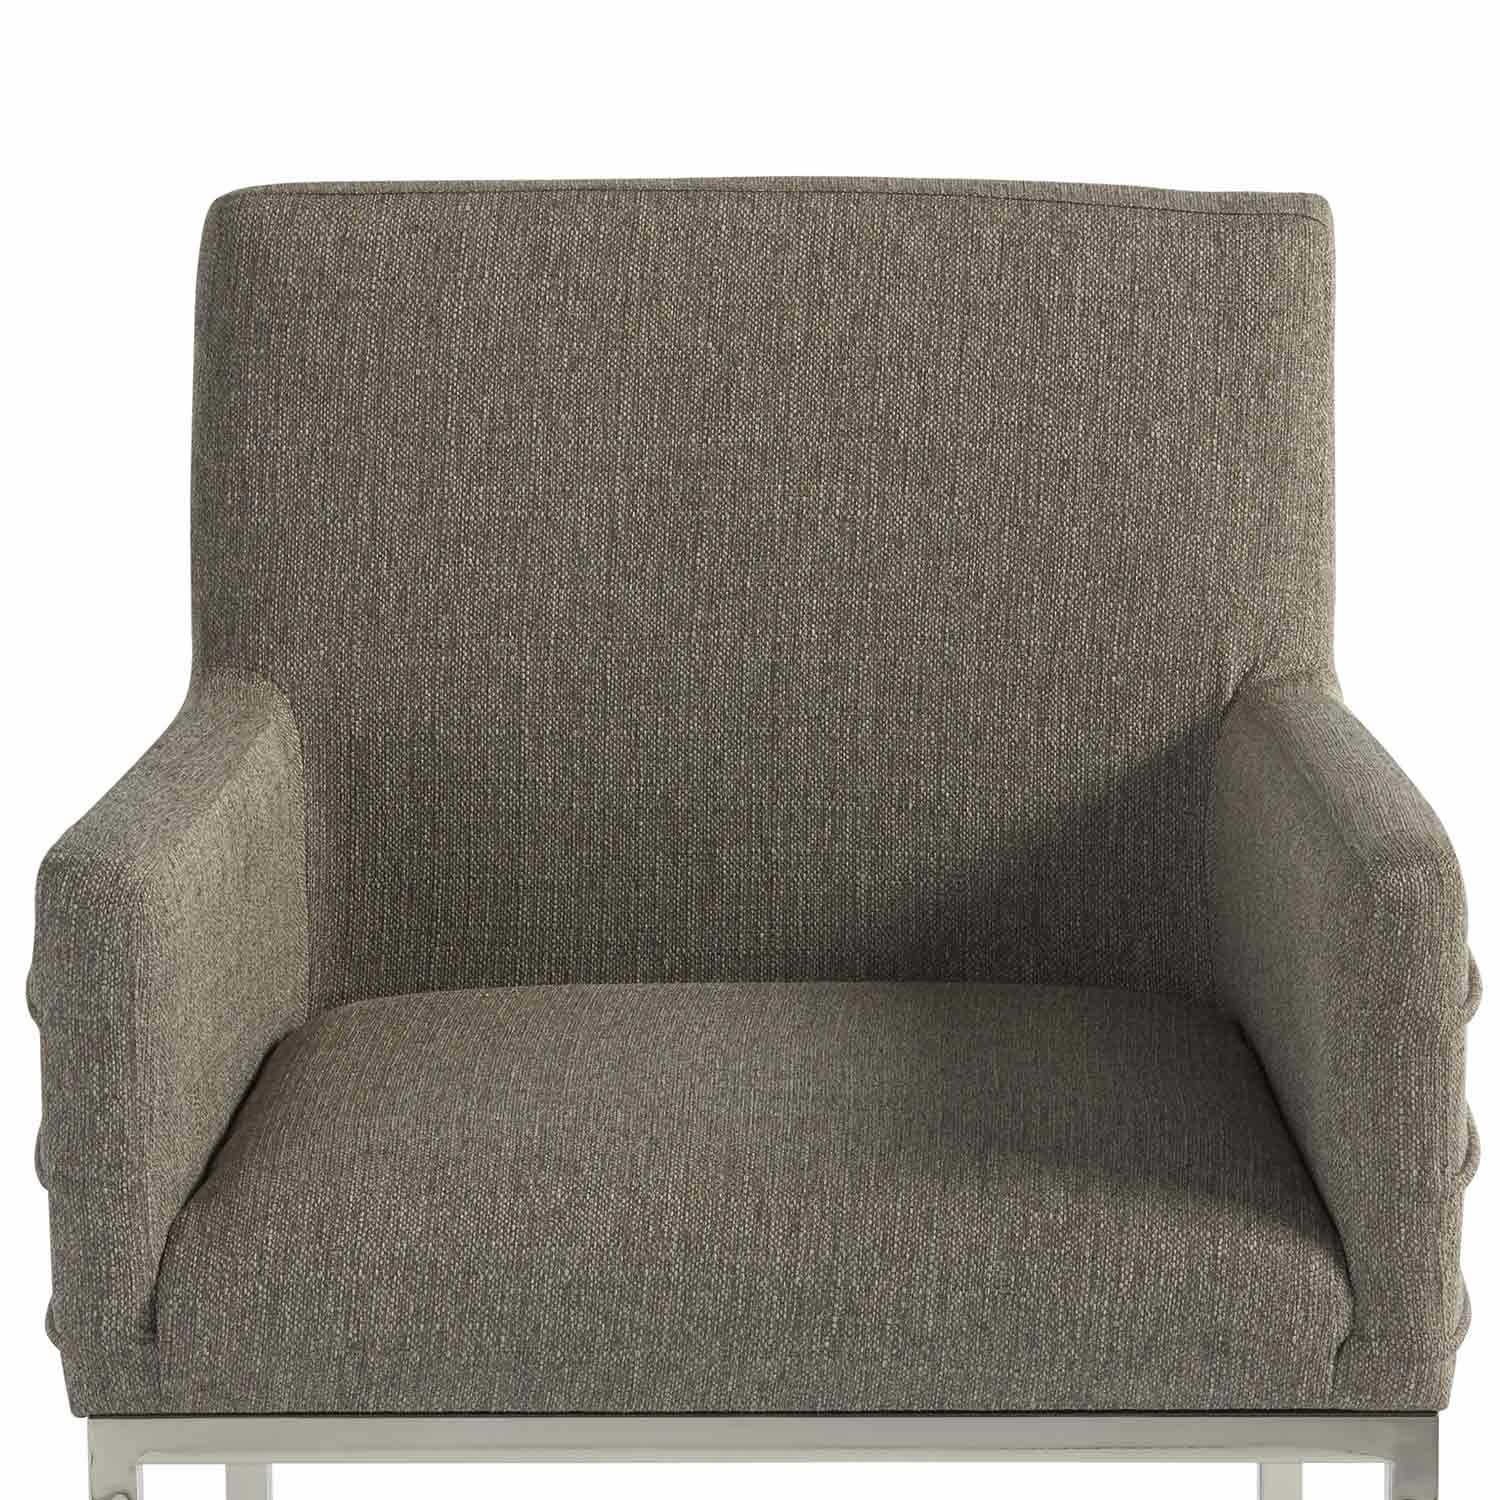 Cooper Upholstered Side Chairs Within Most Recently Released Zephyr Cooper Stainless Steel & Upholstered Arm Chair In Dark Gray (View 4 of 20)